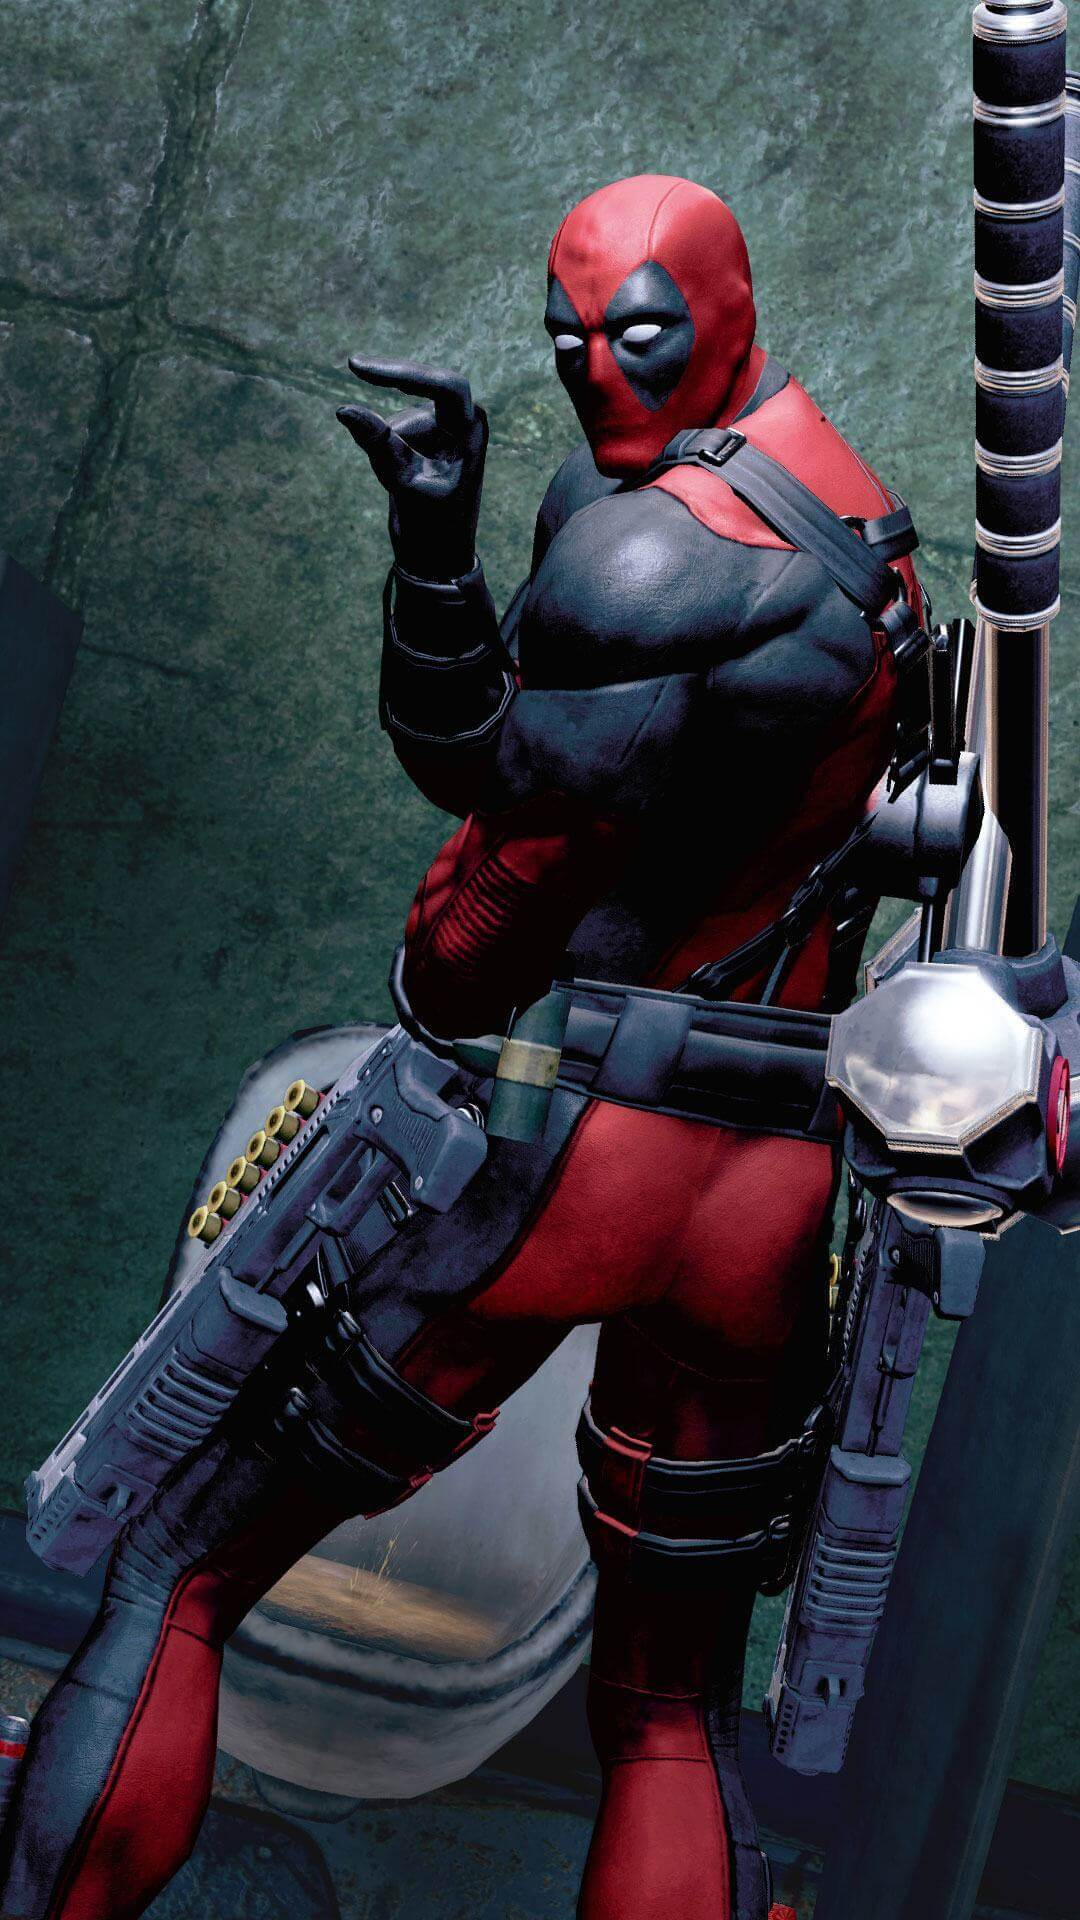 Hd wallpaper iphone 6 - Funny Deadpool Wallpaper Iphone 6 Plus Hd Wallpaper Iphone